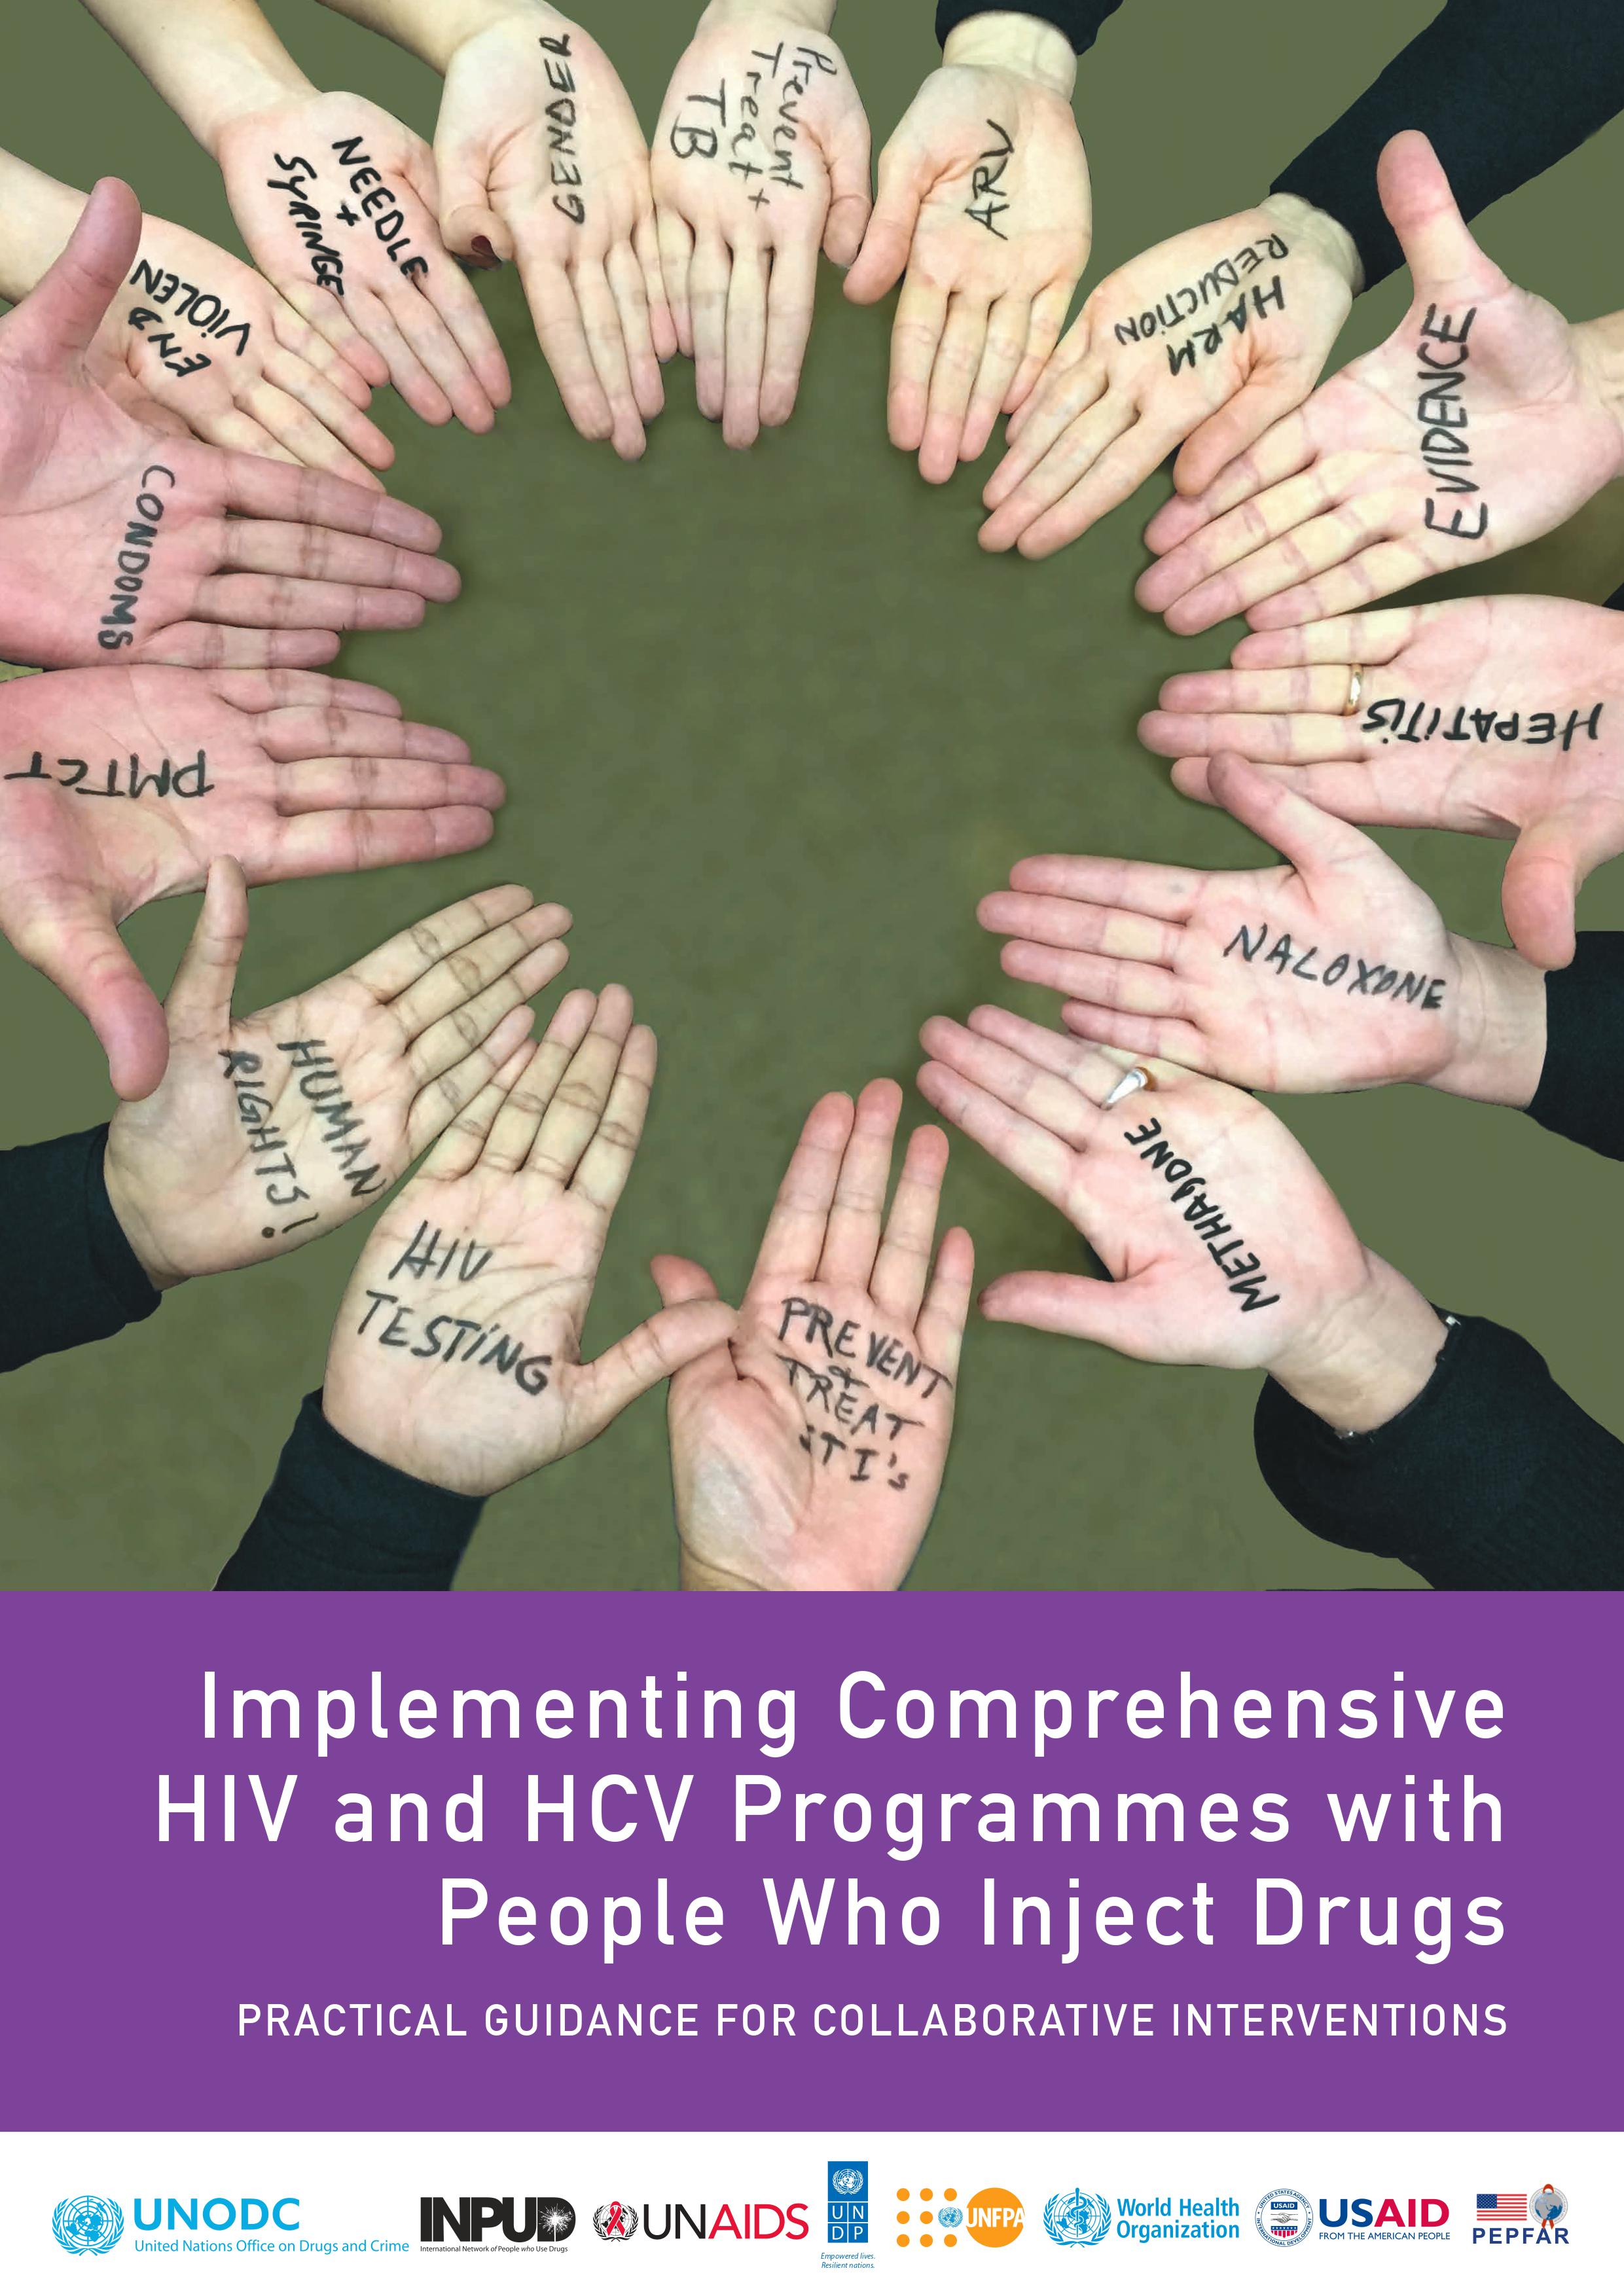 Publications related to HIV and Drug use